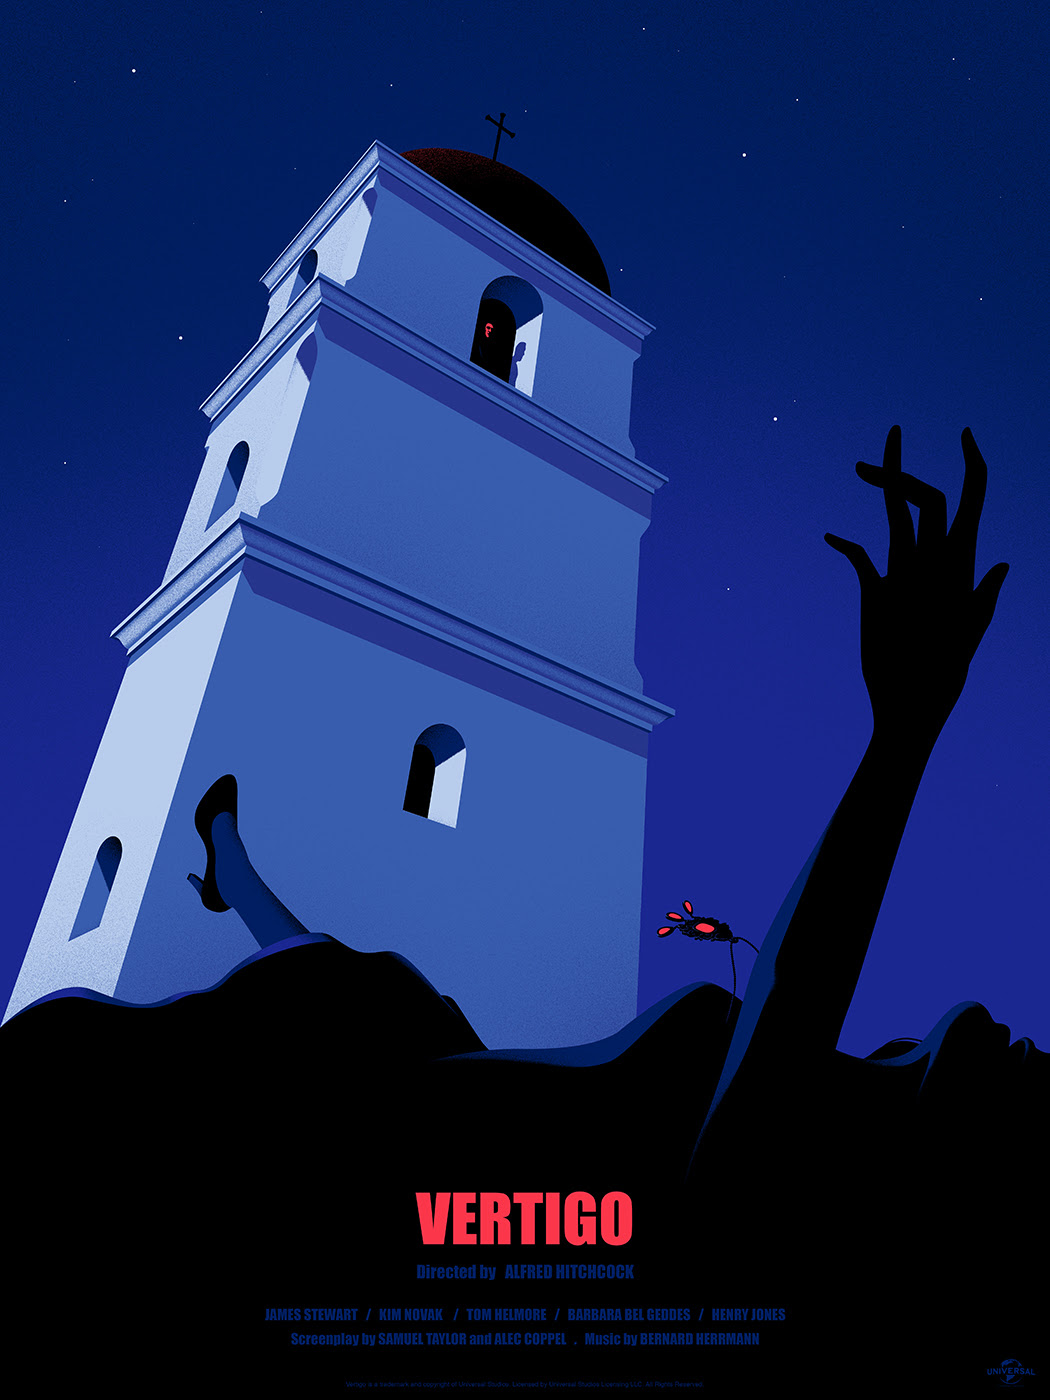 "Vertigo by Thomas Danthony. 18""x24"" screen print. Hand numbered. Edition of 175. Printed by D&L Screenprinting. $40"